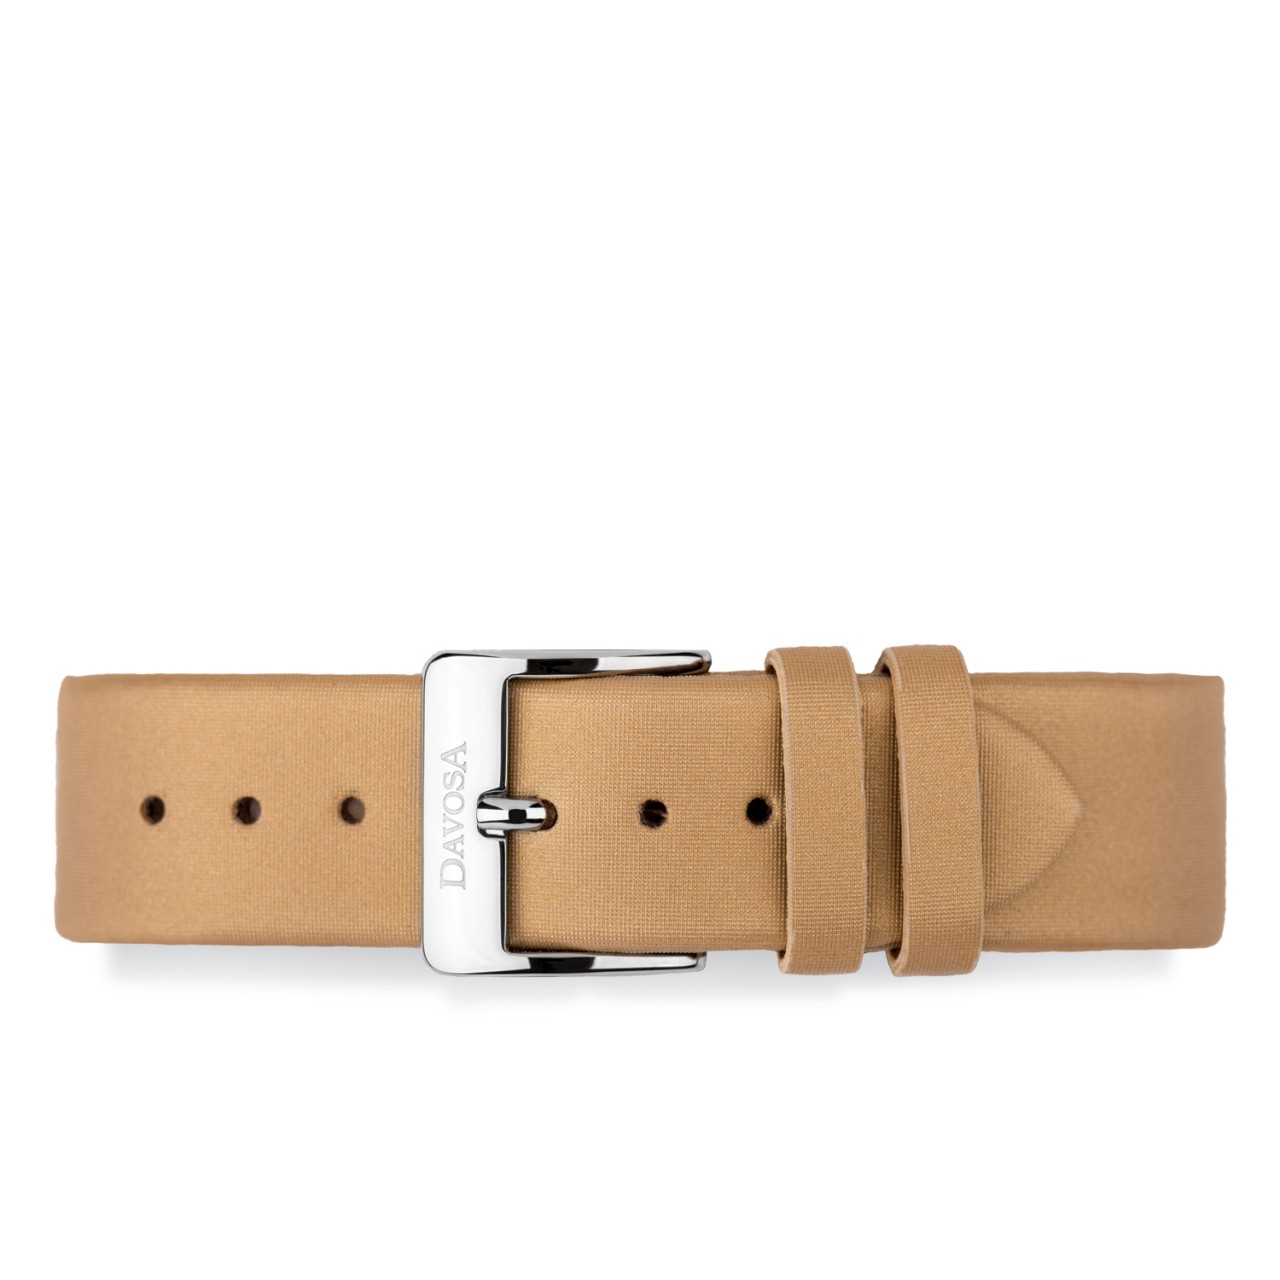 Calfskin leather with gold colored satin covering